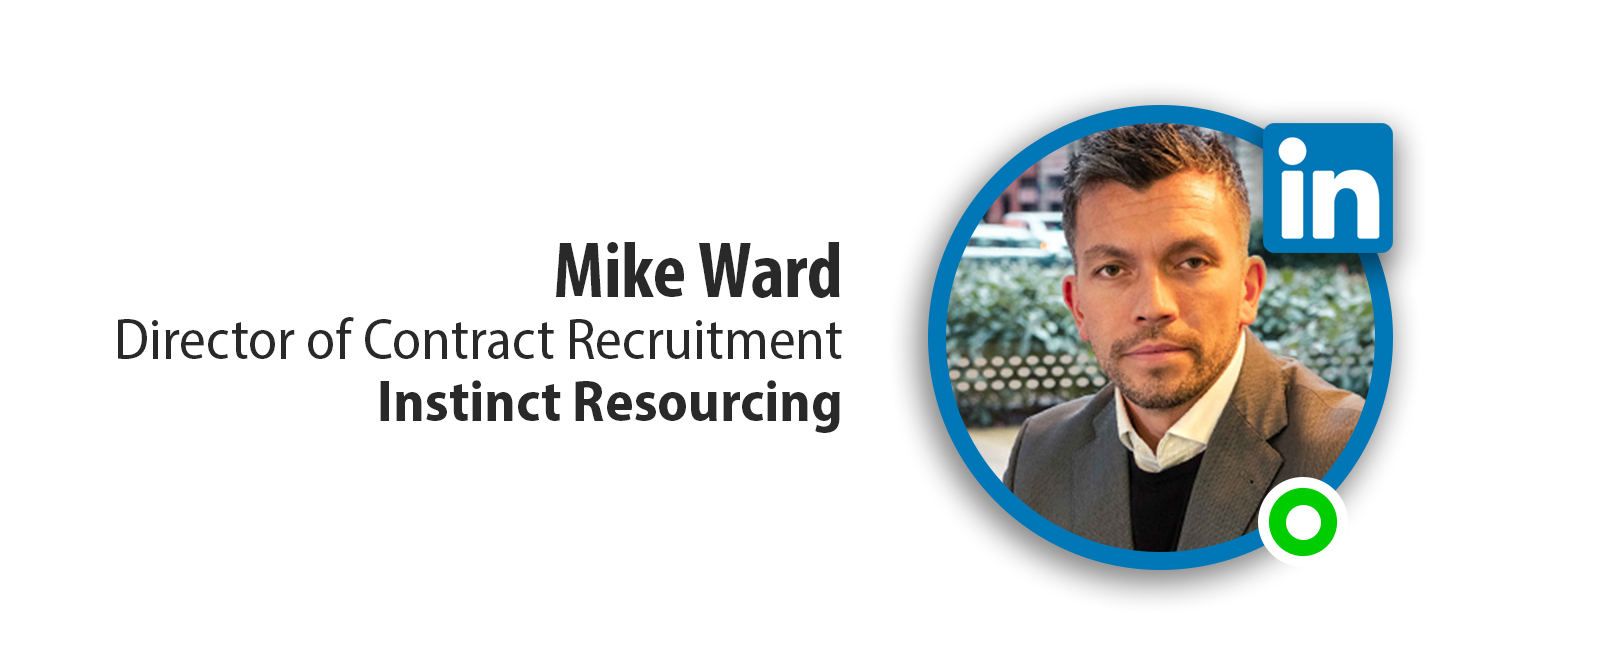 Mike Ward - Director of Contract Recruitment